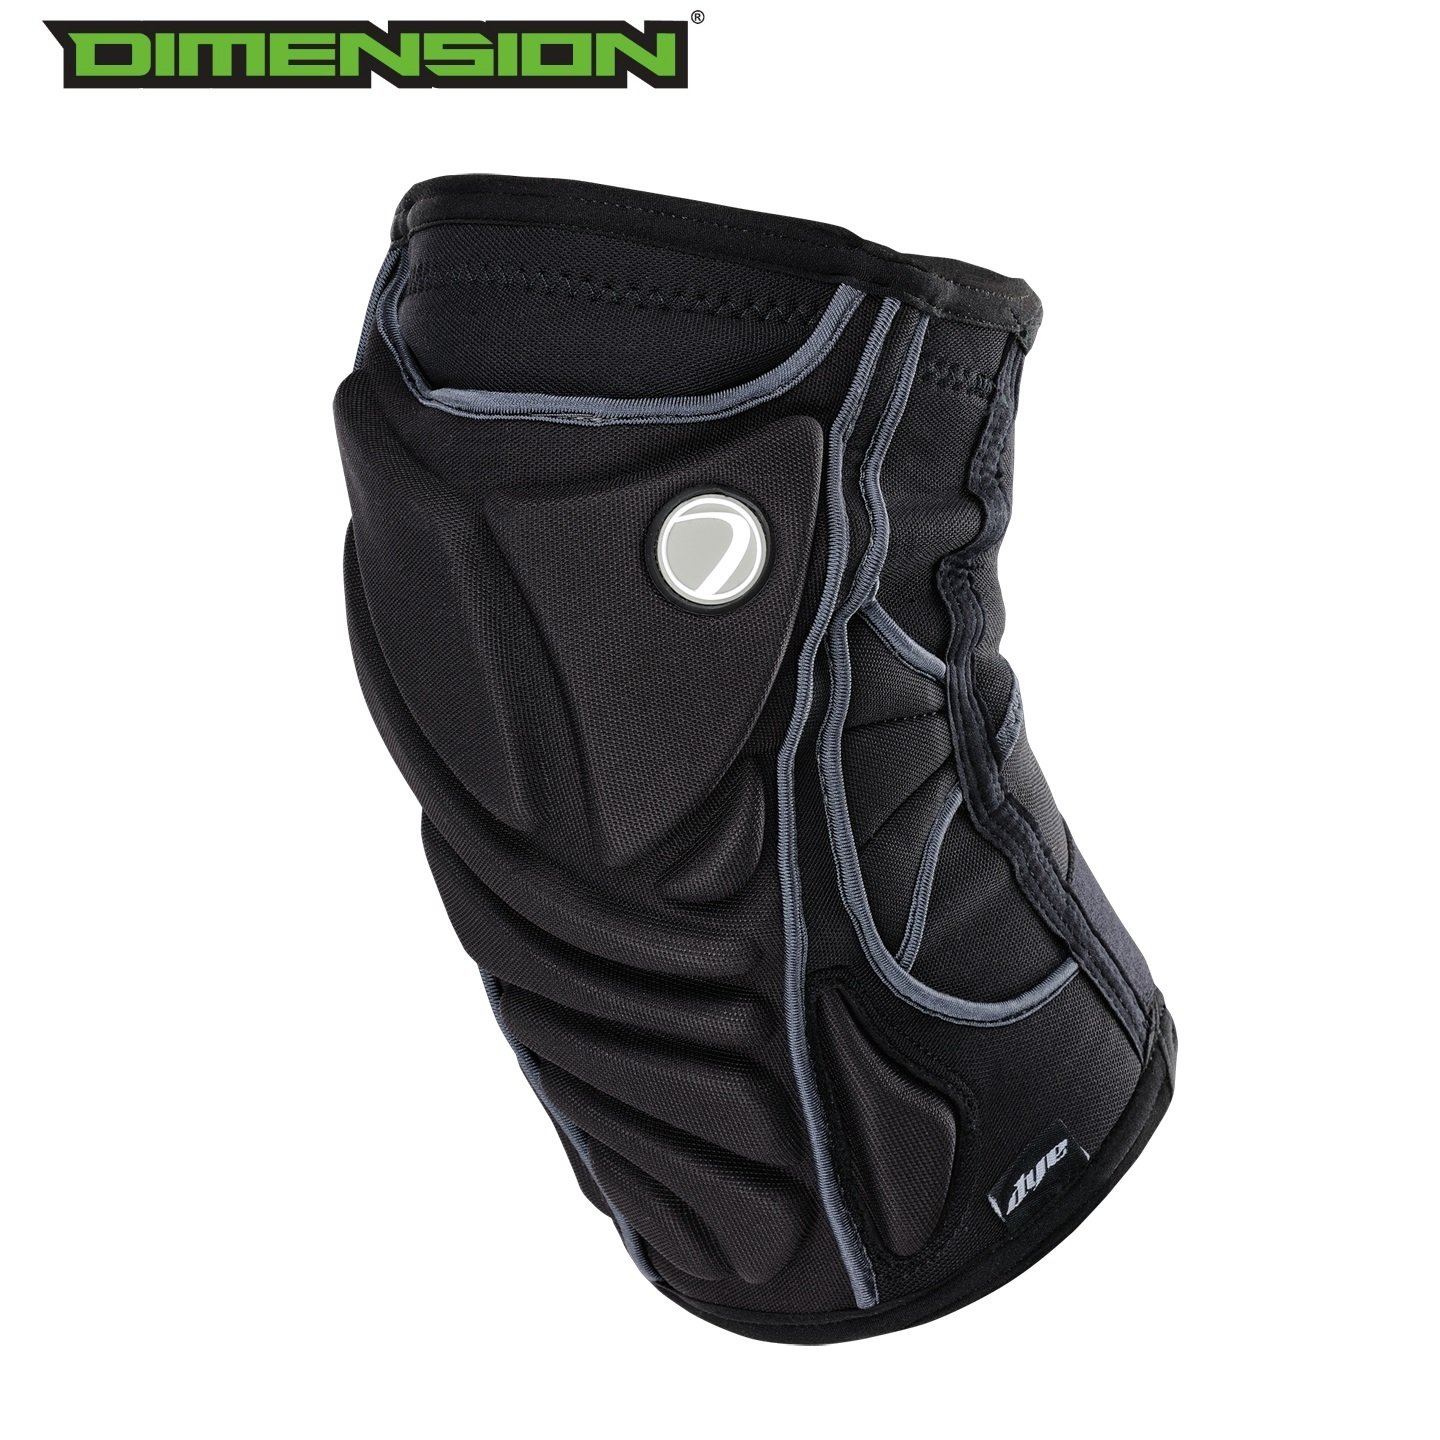 Dye Performance Knee Pads - Black - Small